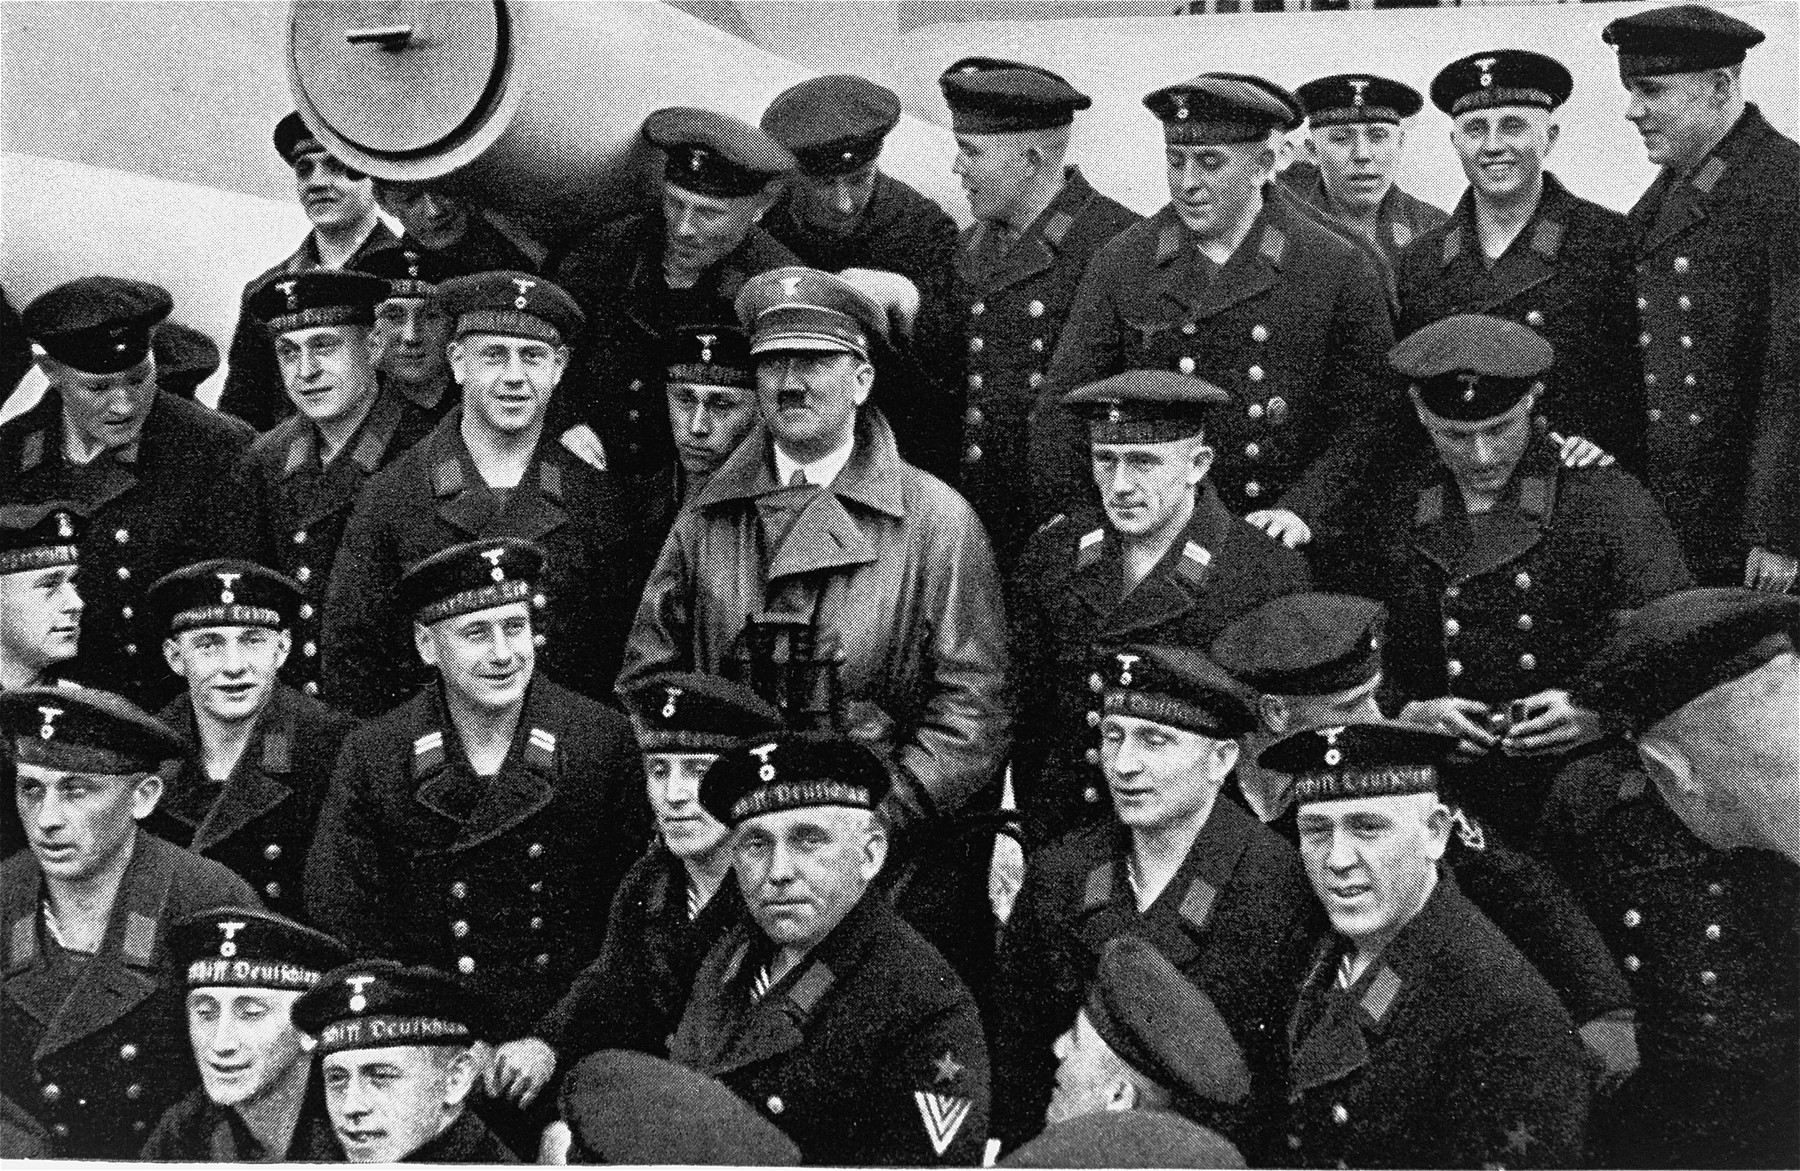 Adolf Hitler poses with a group of sailors aboard the Deutschland battleship